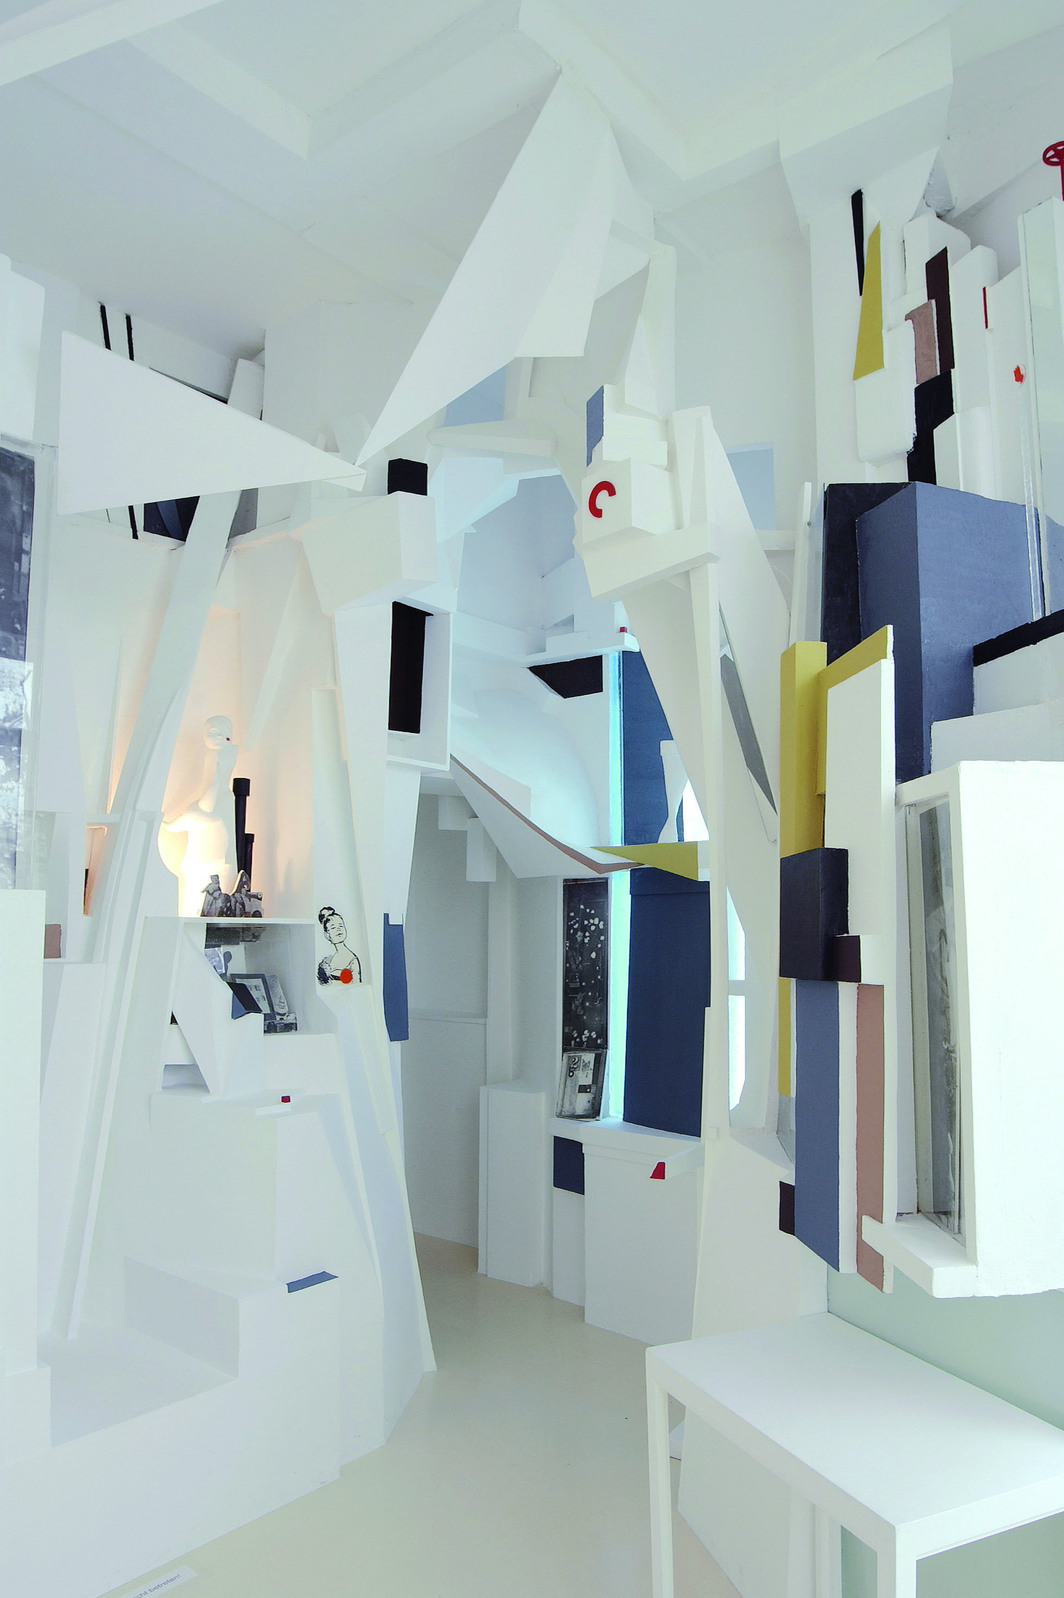 Kurt Schwitters, Merzbau, 1923-48, 12' x 19' x 15'. Reconstruction by Peter Bissegger.